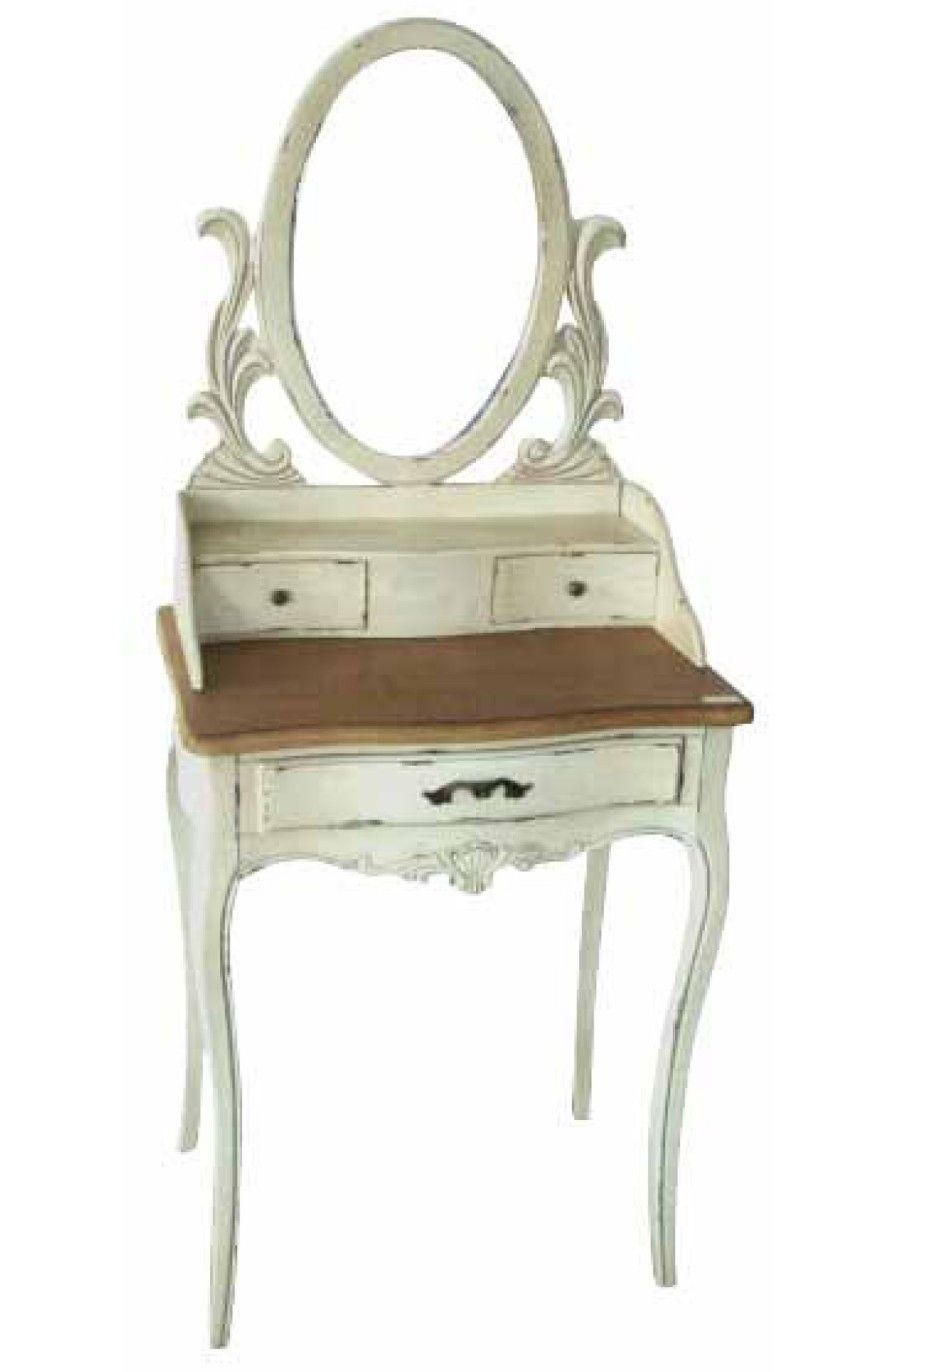 Wooden Make Up Table Furniture Rustic White Stained Wooden Make Up Table With Brown